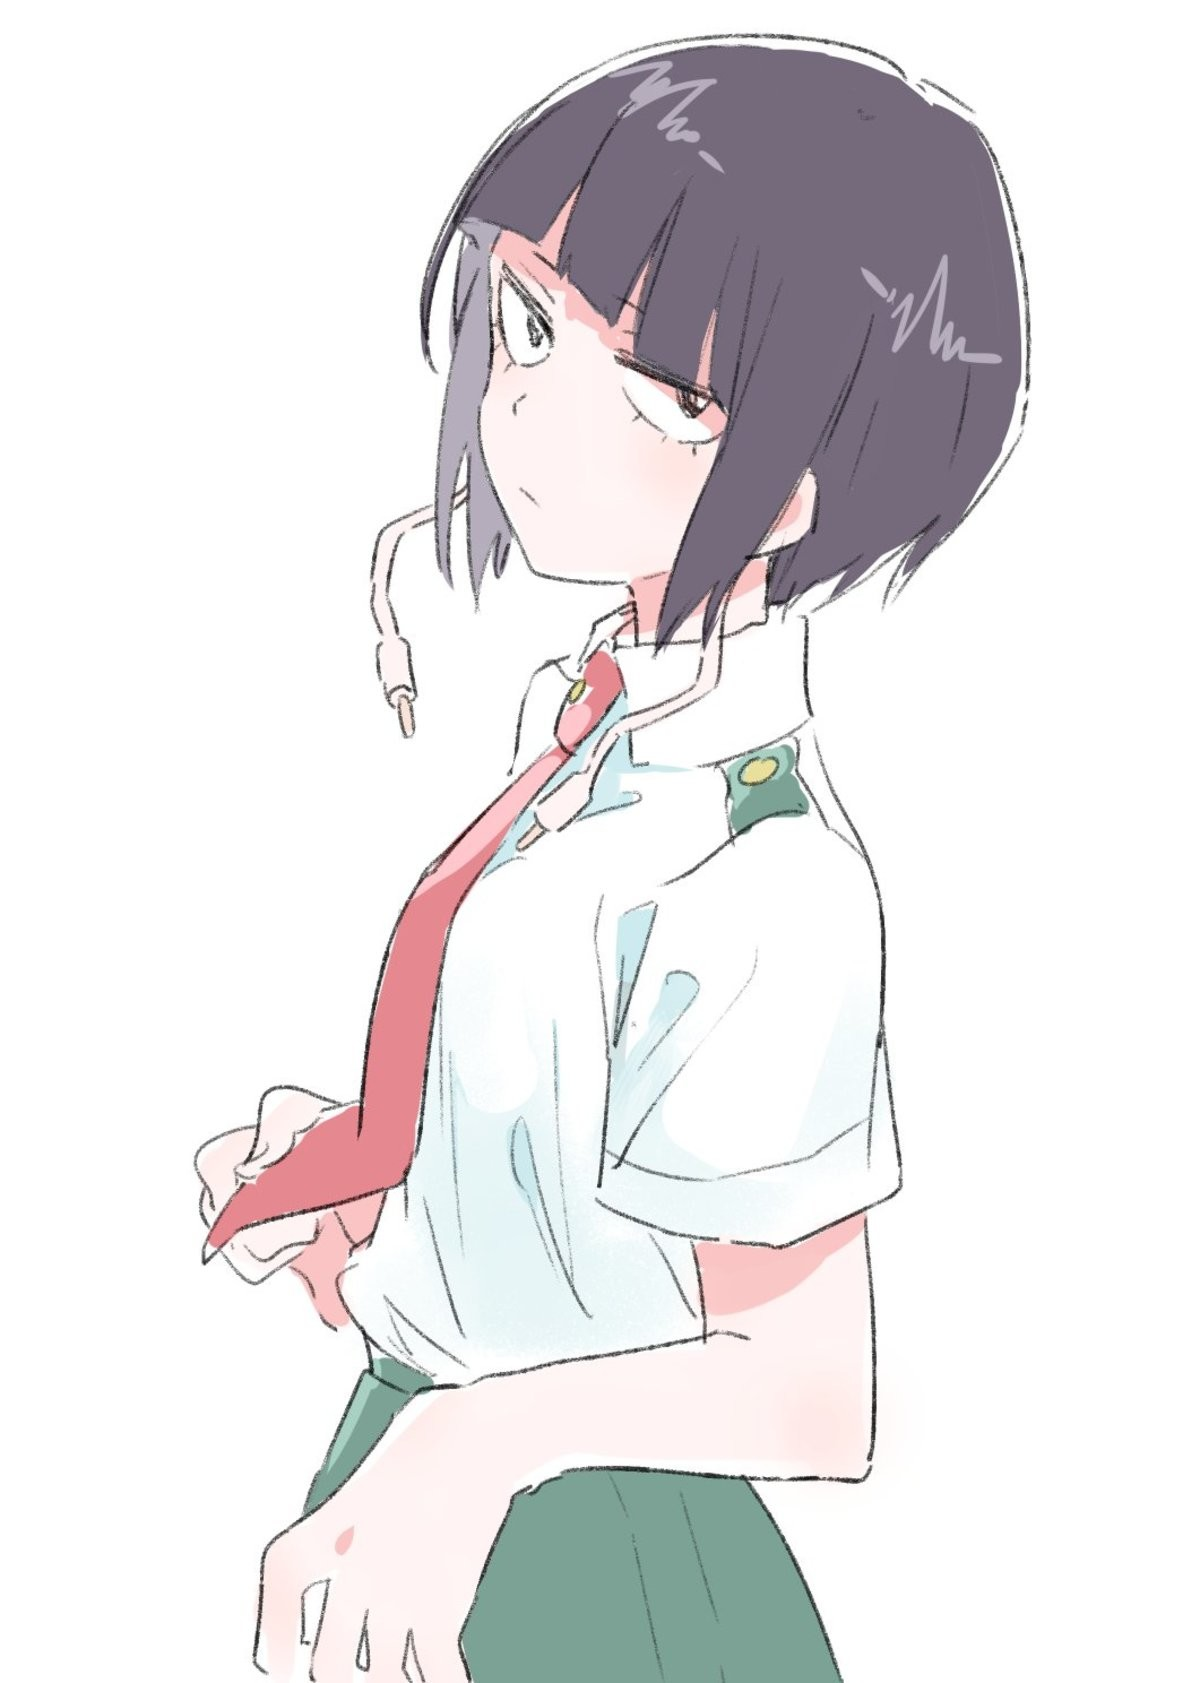 Daily Jirou #81. join list: DailyJiro (121 subs)Mention Clicks: 7021Msgs Sent: 9039Mention History.. Simple clean drawings like these are my favourites